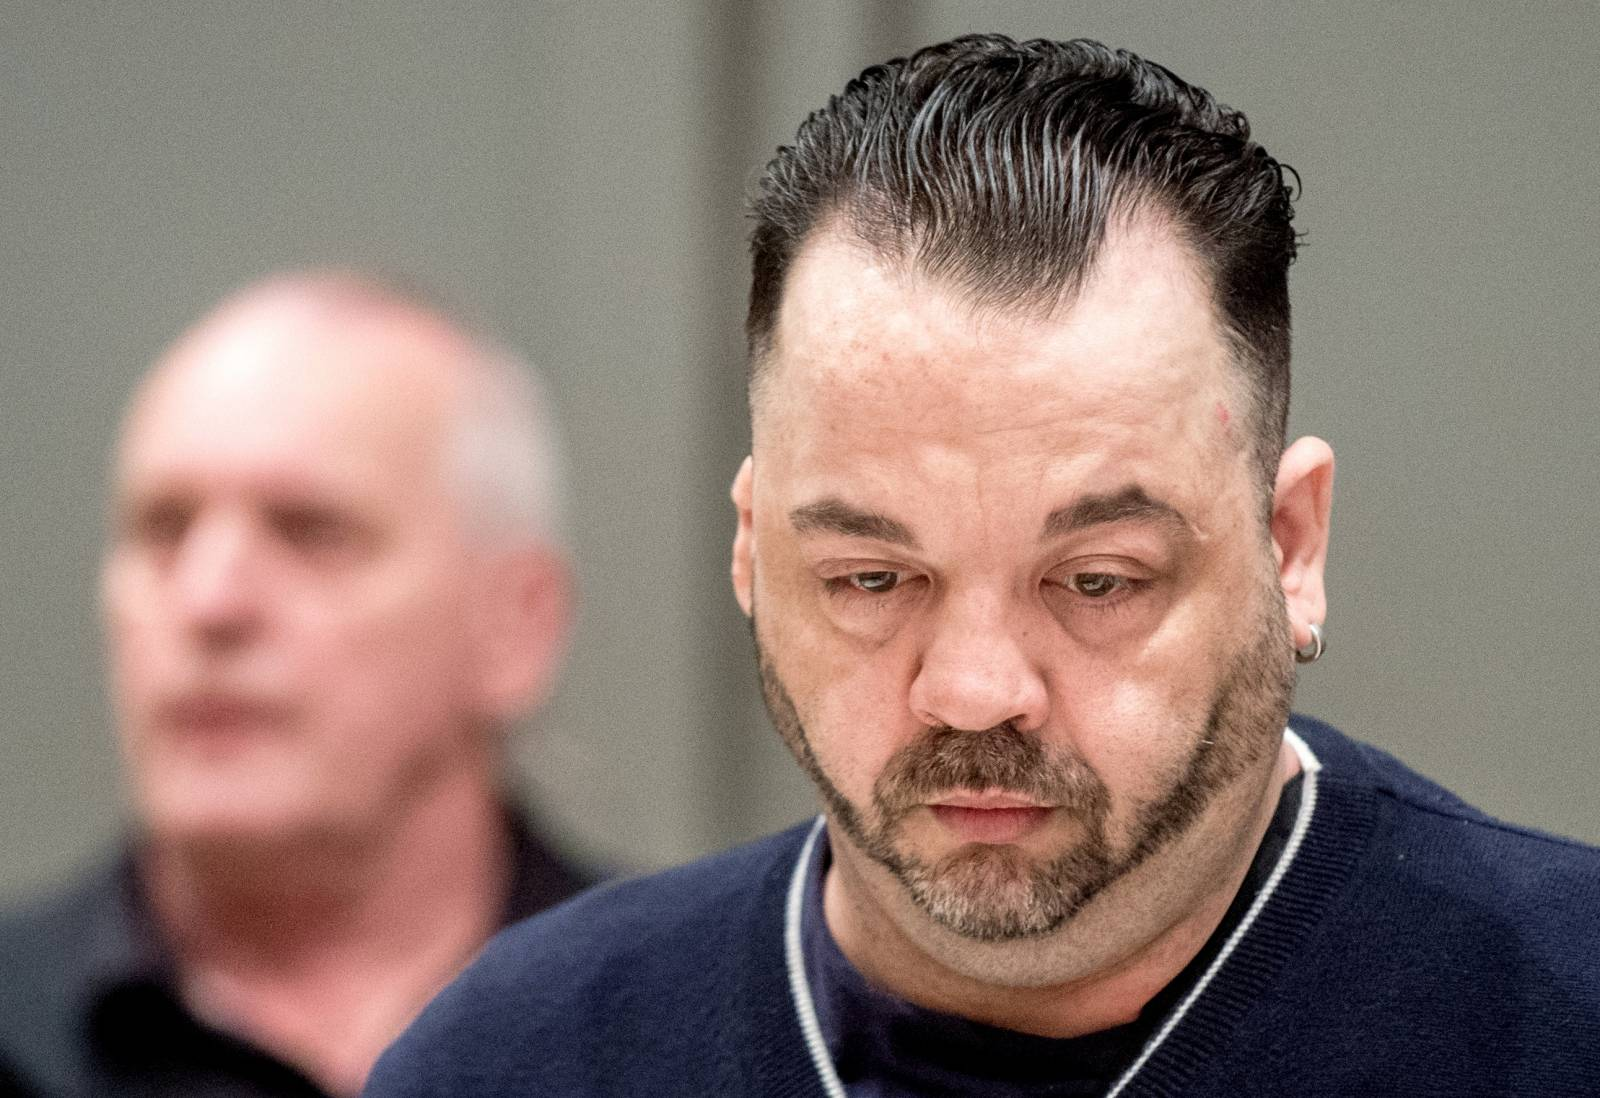 Niels Hoegel, accused of murdering 100 patients at the clinics in Delmenhorst and Oldenburg, attends his trial in Oldenburg